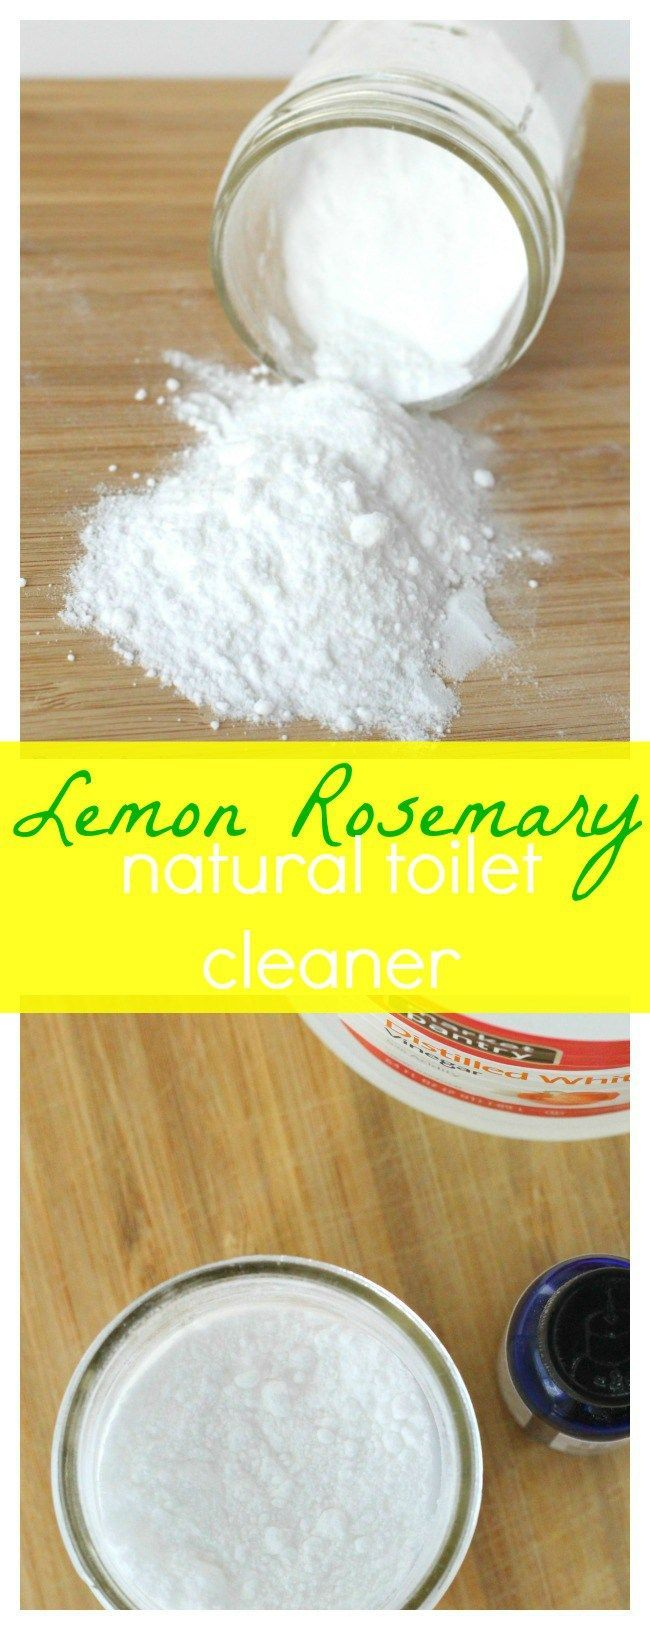 All purpose bathroom cleaner - Best 25 Natural Toilet Cleaner Ideas On Pinterest Homemade Toilet Cleaner Toilet Cleaning Tips And Natural Cleaners